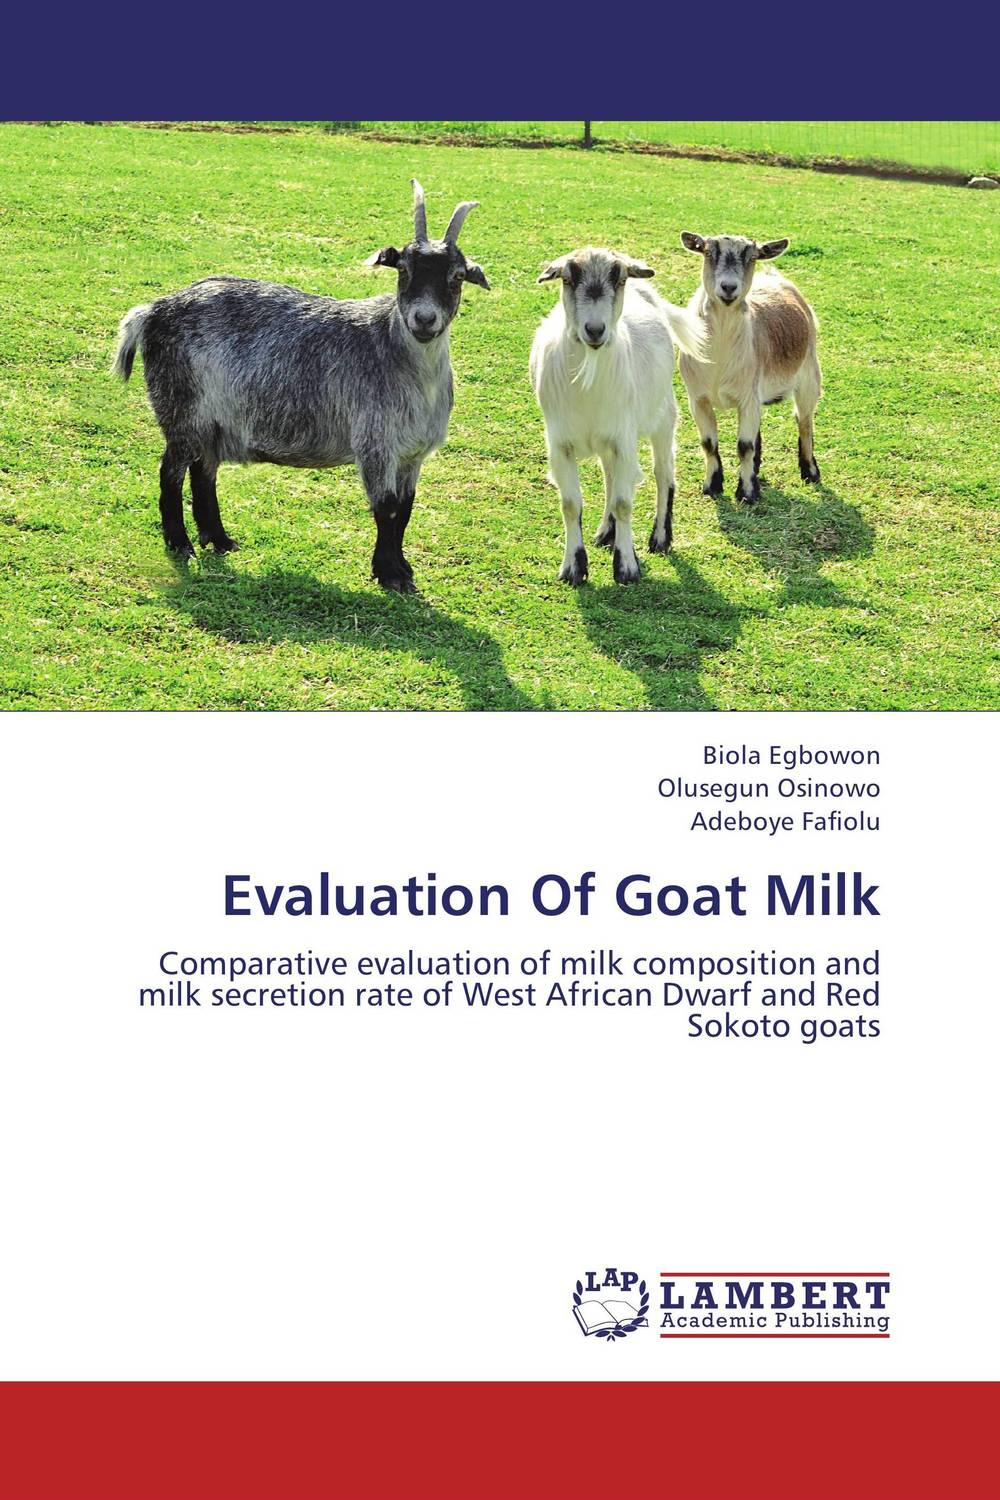 Evaluation Of Goat Milk